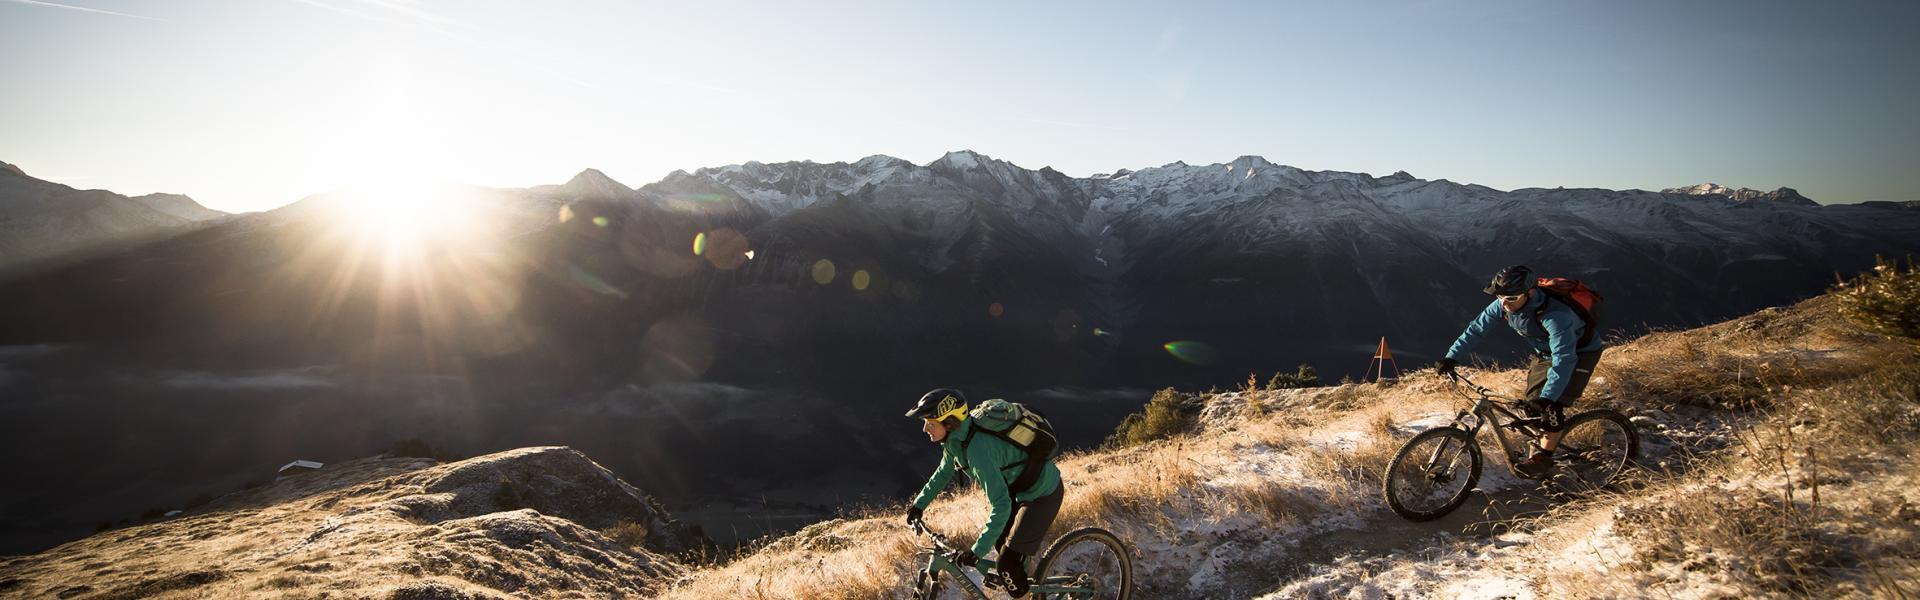 Mountain bikers riding at the Grimselpass, Valais